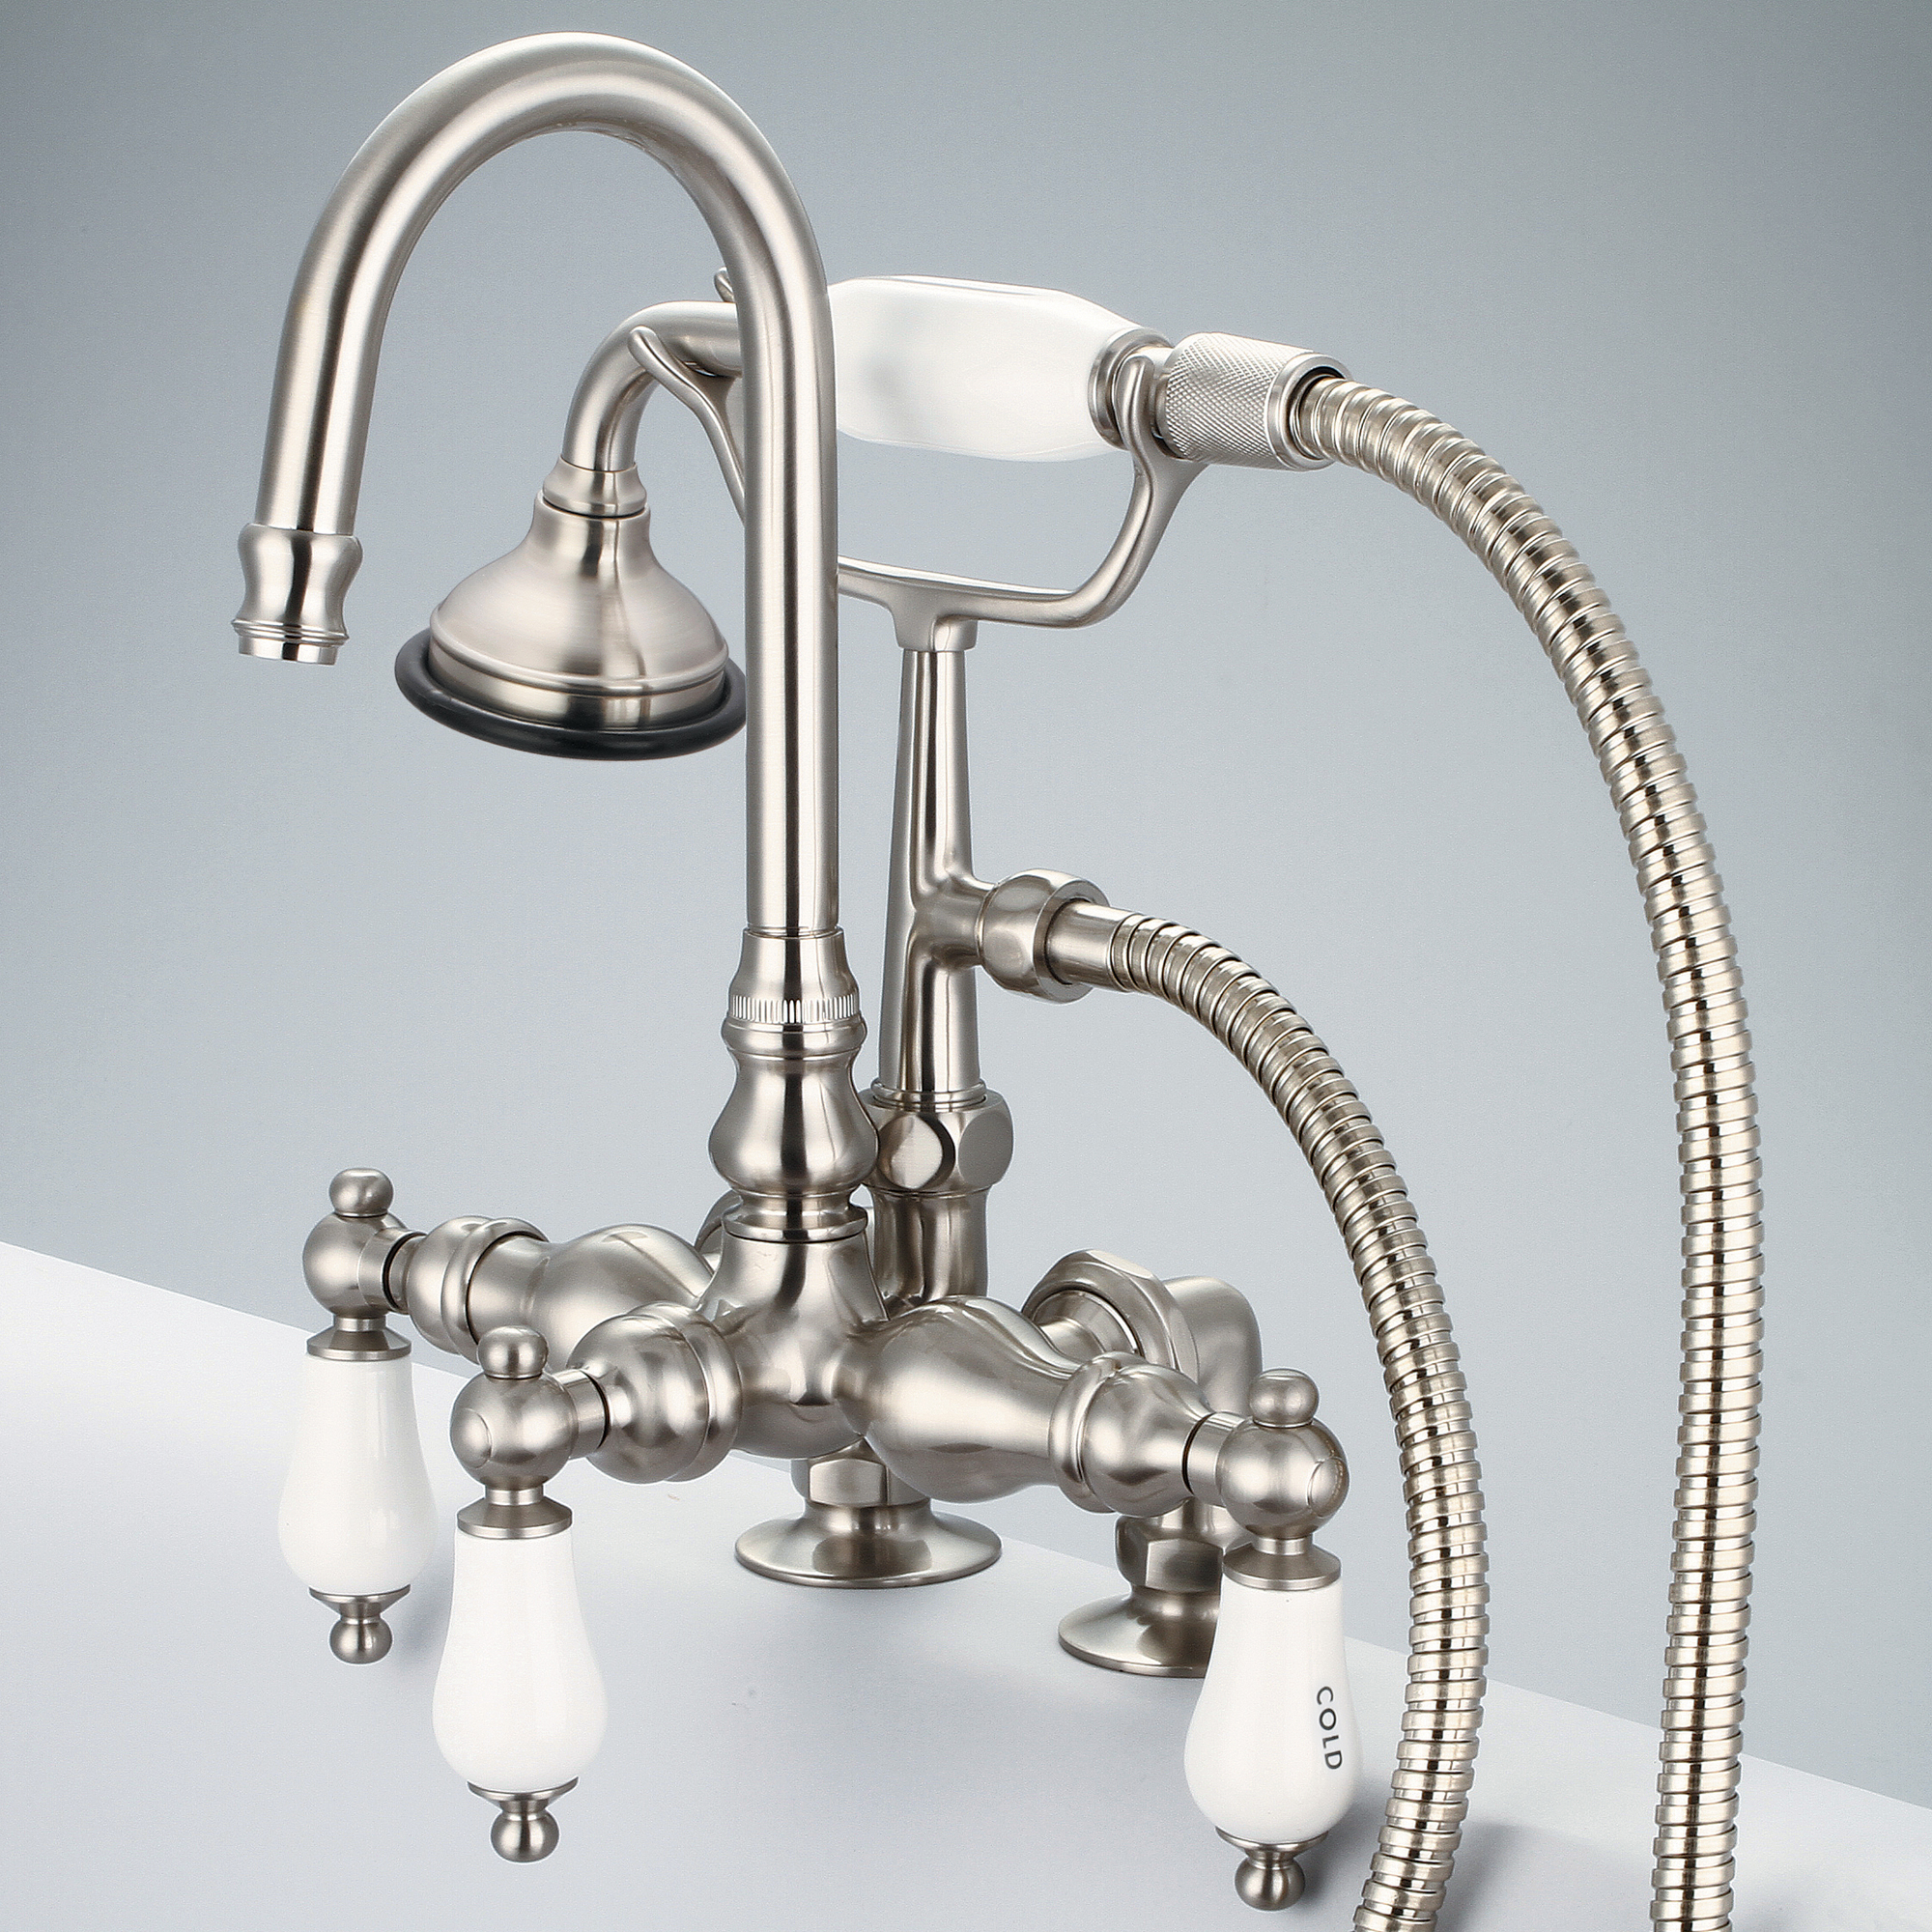 Vintage Classic 3.375 Inch Center Deck Mount Tub Faucet With Gooseneck Spout, 2 Inch Risers & Handheld Shower in Brushed Nickel Finish With Metal Lever Handles Without Labels